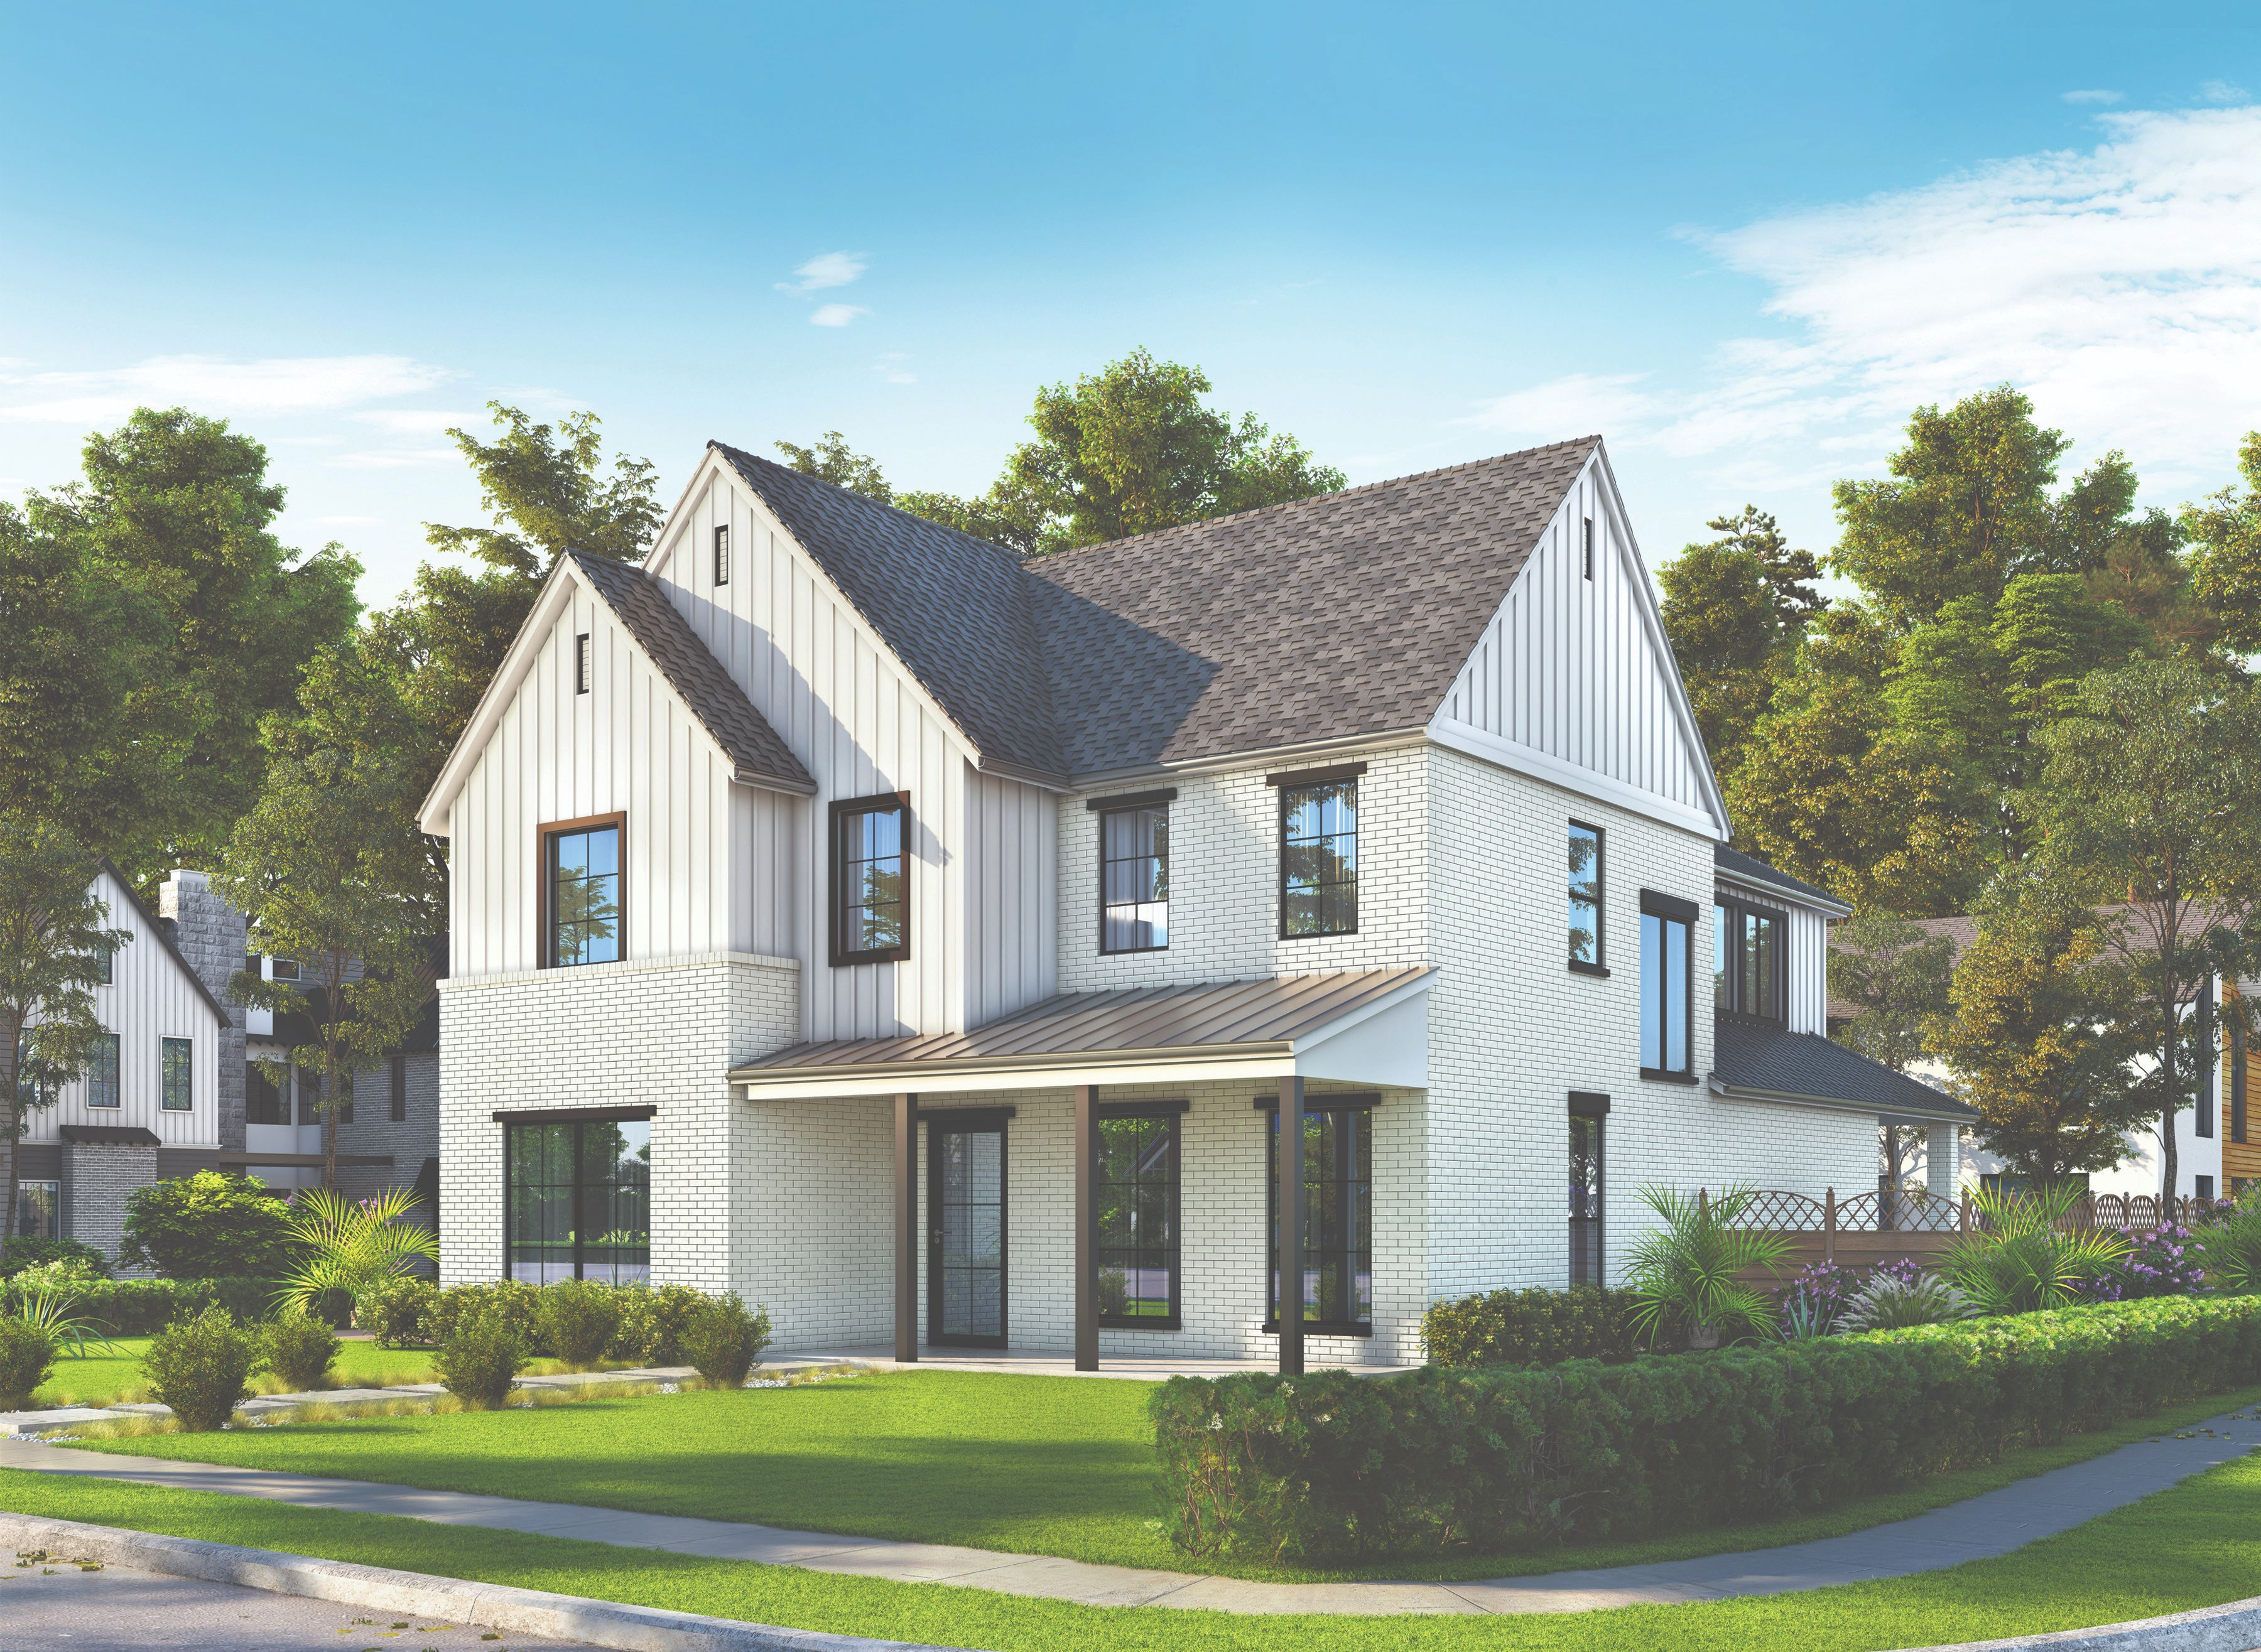 Exterior rendering of residential proprty